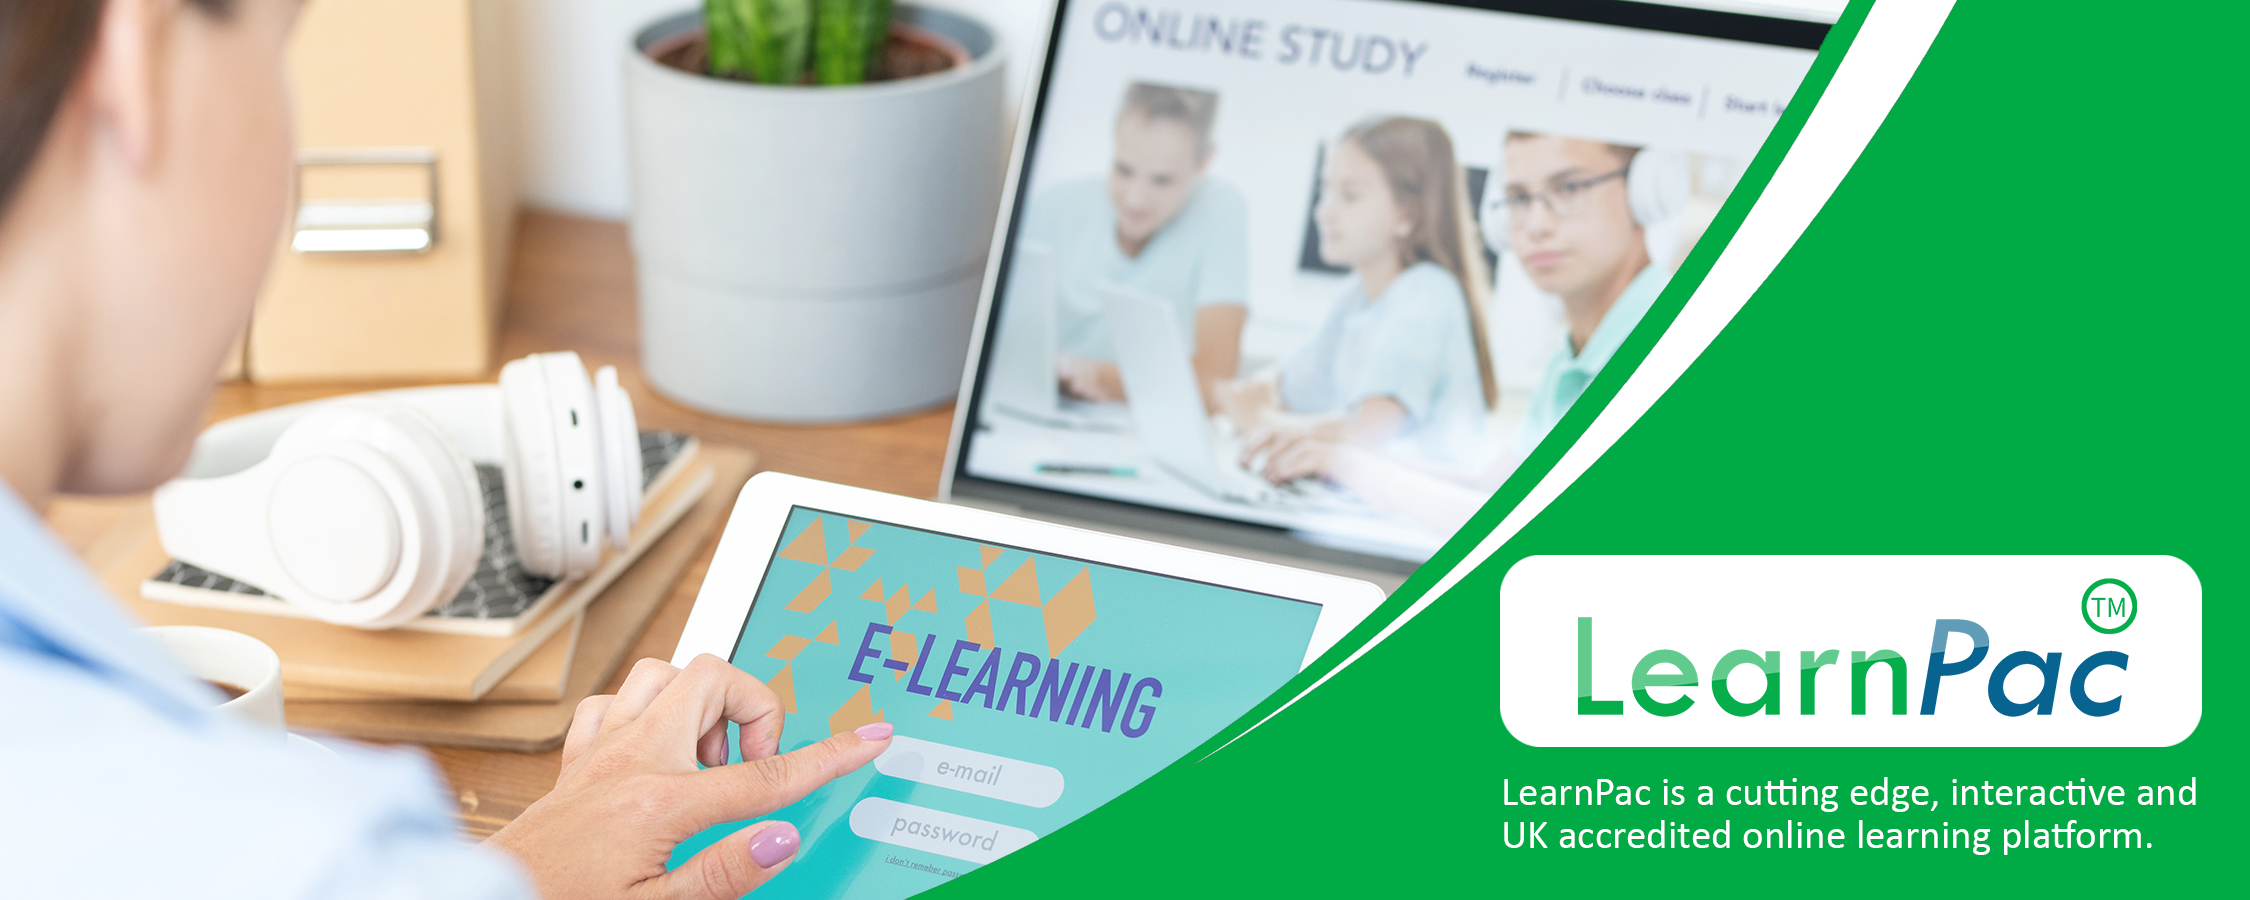 Excel 2016 Expert Training - Online Learning Courses - E-Learning Courses - LearnPac Systems UK -